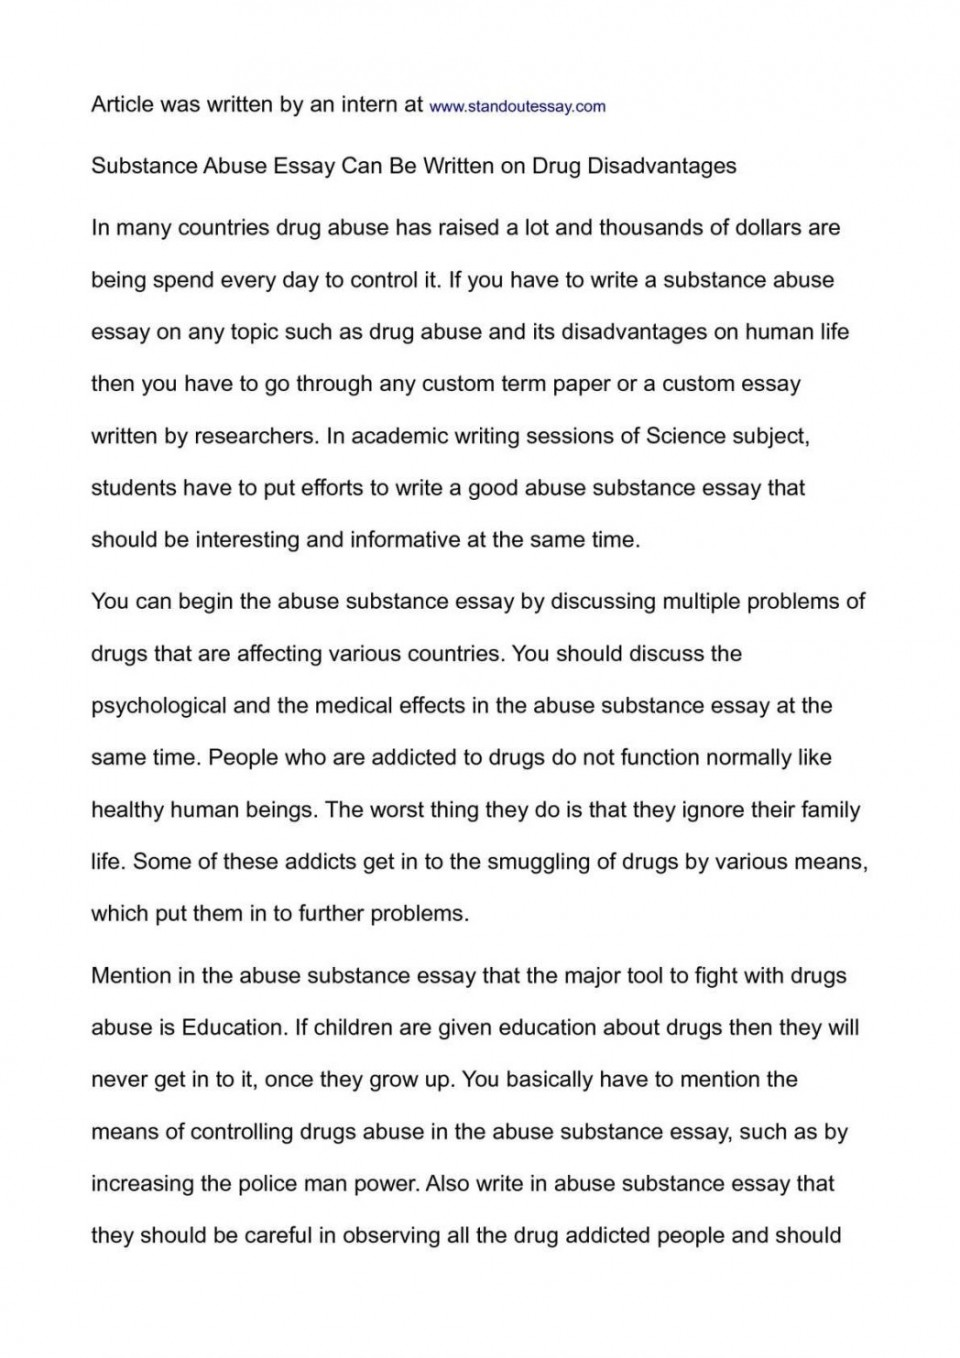 003 Essay Example National Honor Society Conclusion On Substance Abuse Junior Exampl Examples Topics 1048x1483 Archaicawful Of Drug Alcohol 960